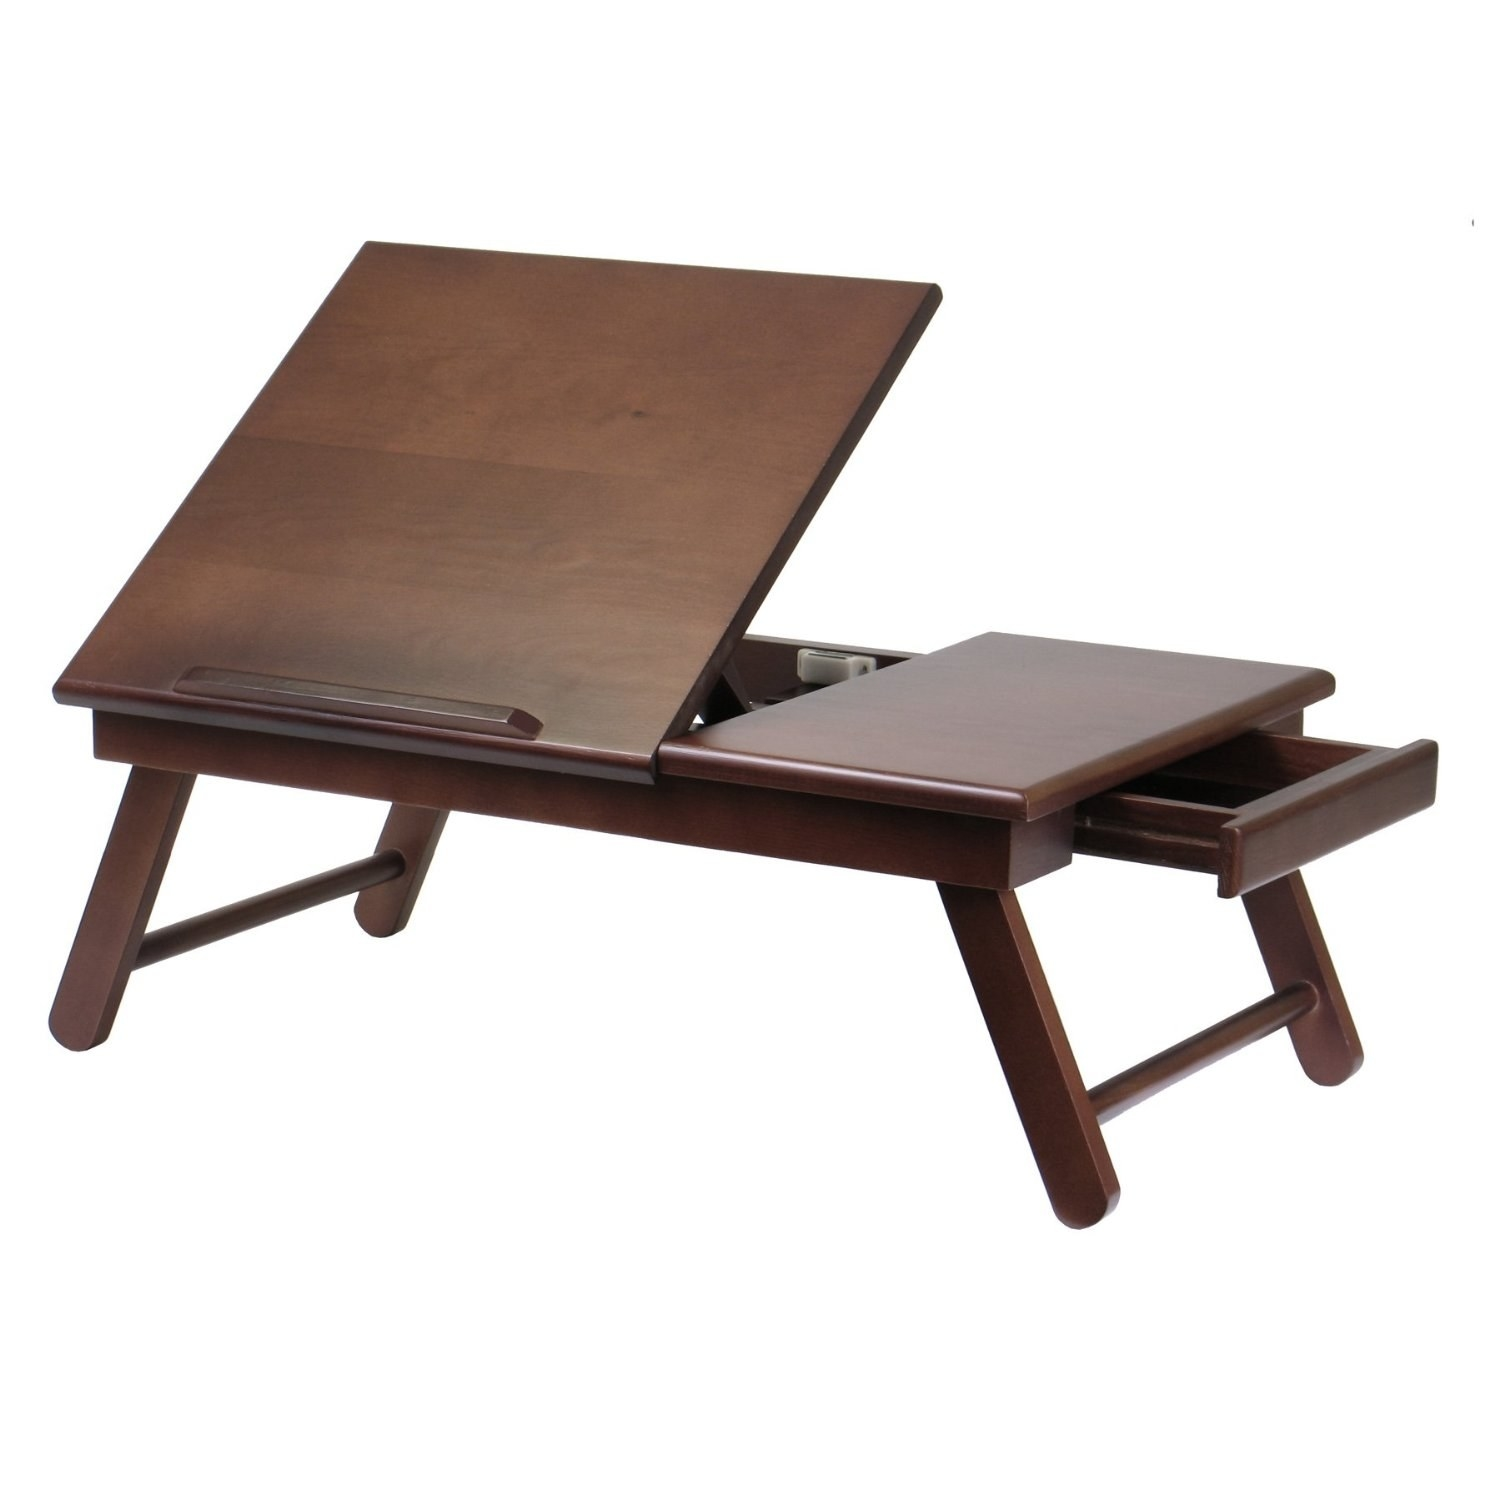 This Lap Desk With Storage And Foldable Legs That S Marvelous For Days When You Refuse To Get Out Of Bed